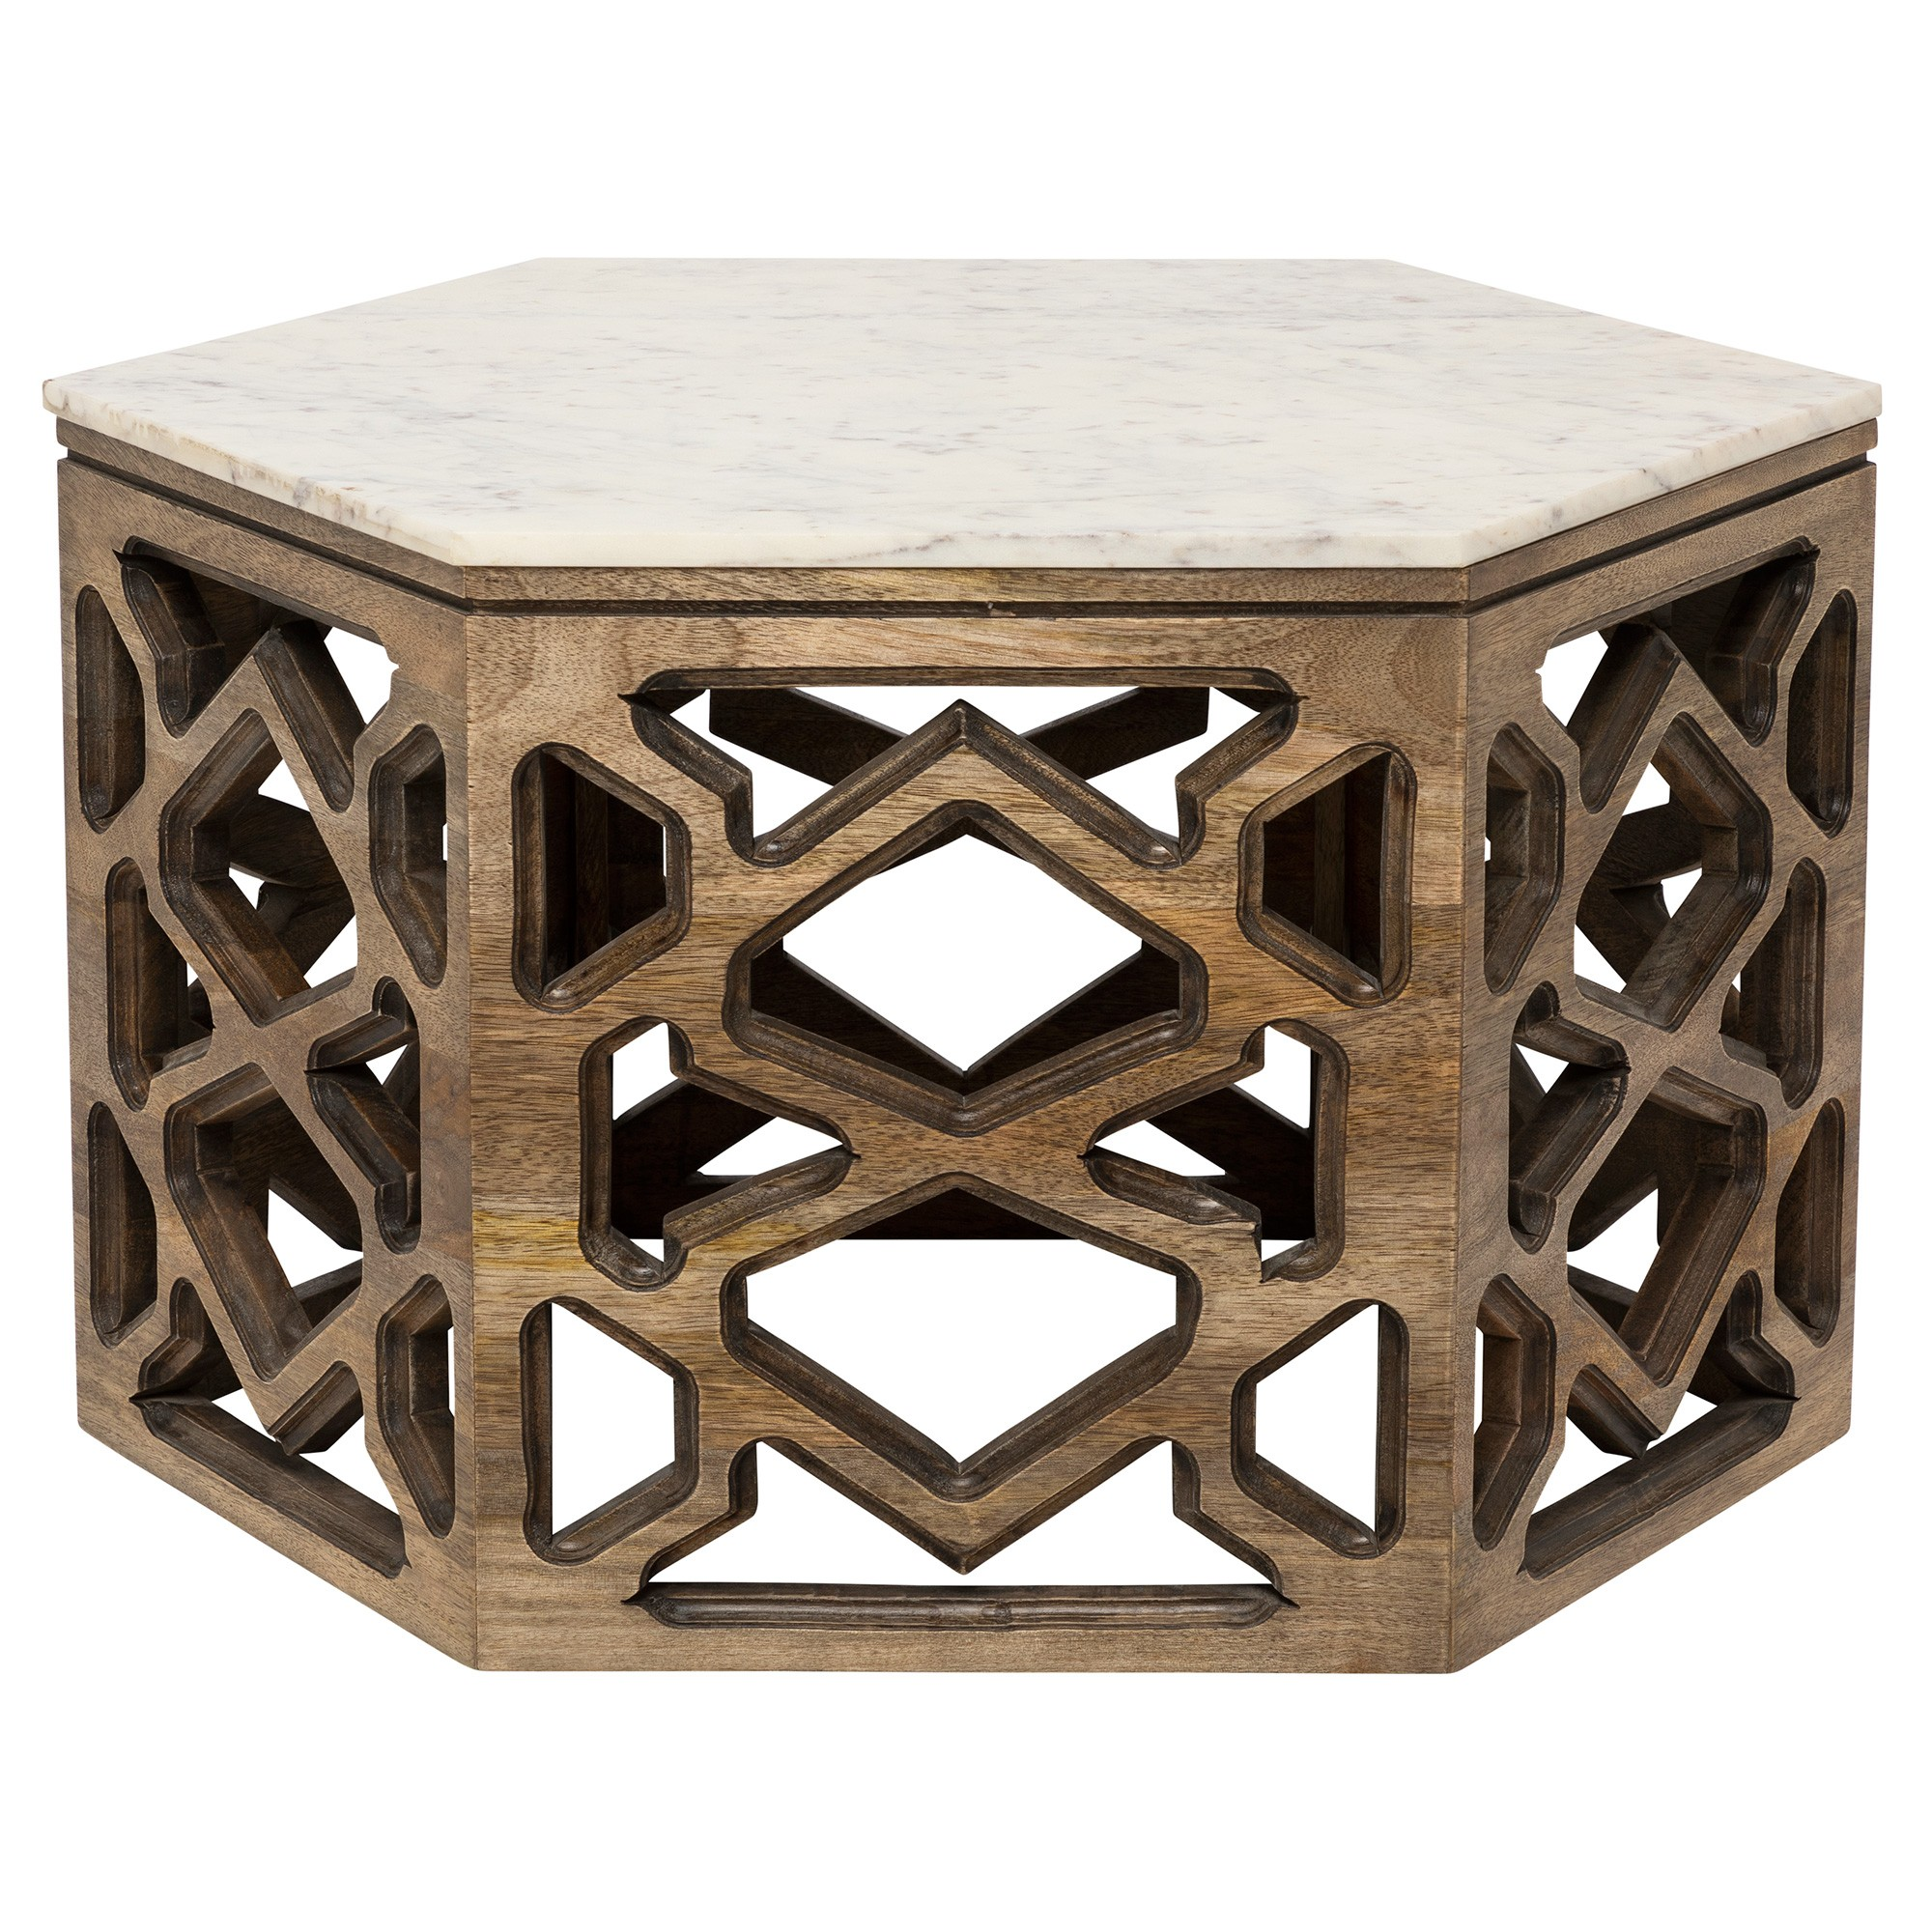 Tangier Marble Topped Teak Timber Hexagon Coffee Table, 84cm